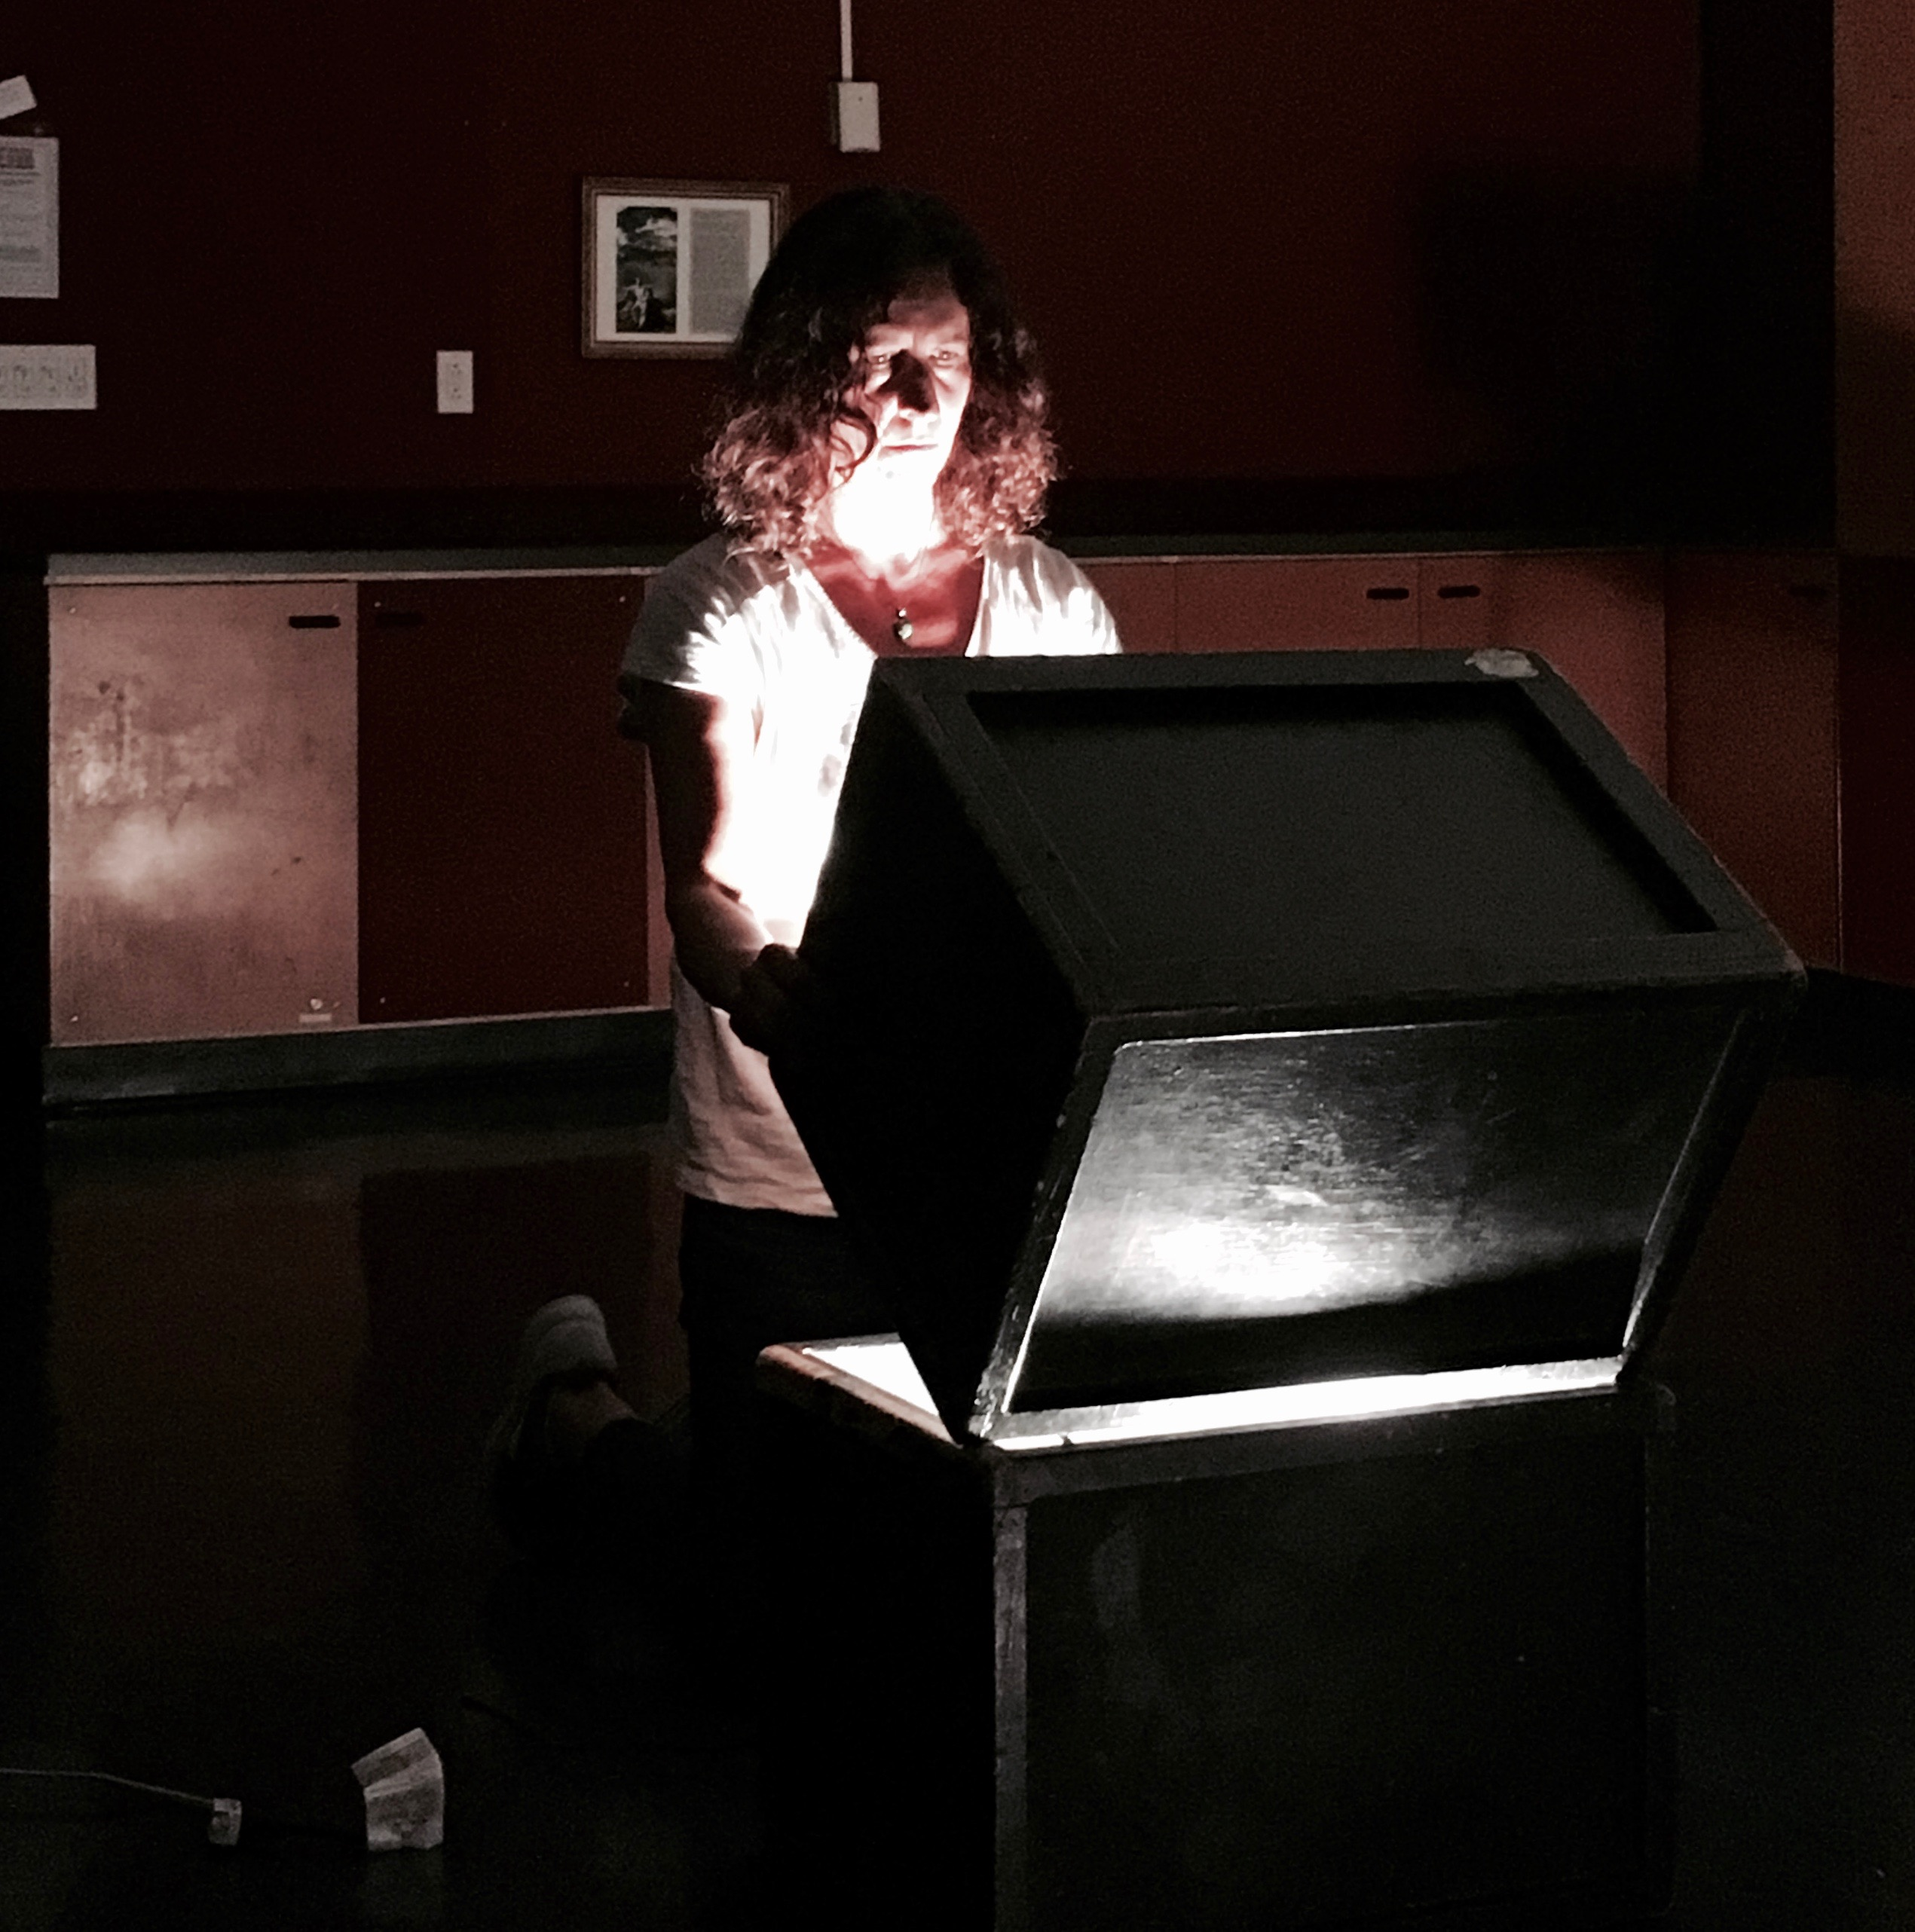 A woman lifts the top half of a box to reveal light within.